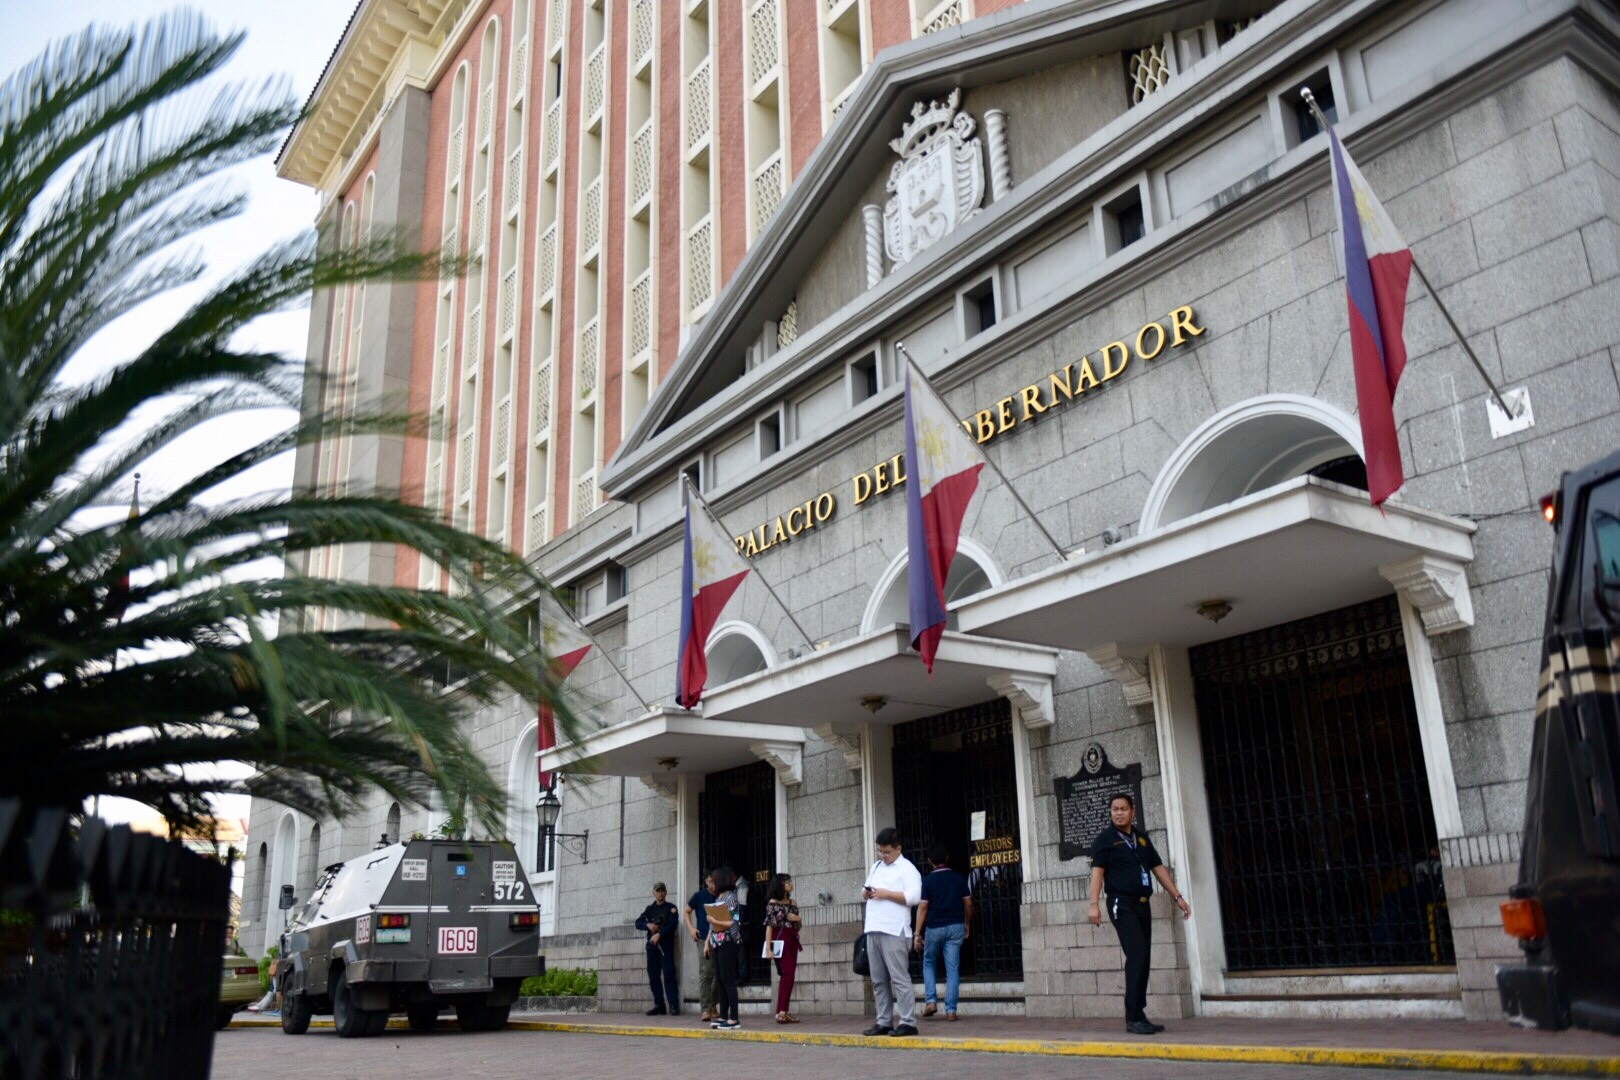 POLL BODY HEADQUARTERS. The Commission on Elections (Comelec) office at the Palacio del Gobernador in Intramuros, Manila. Photo by LeAnne Jazul/Rappler